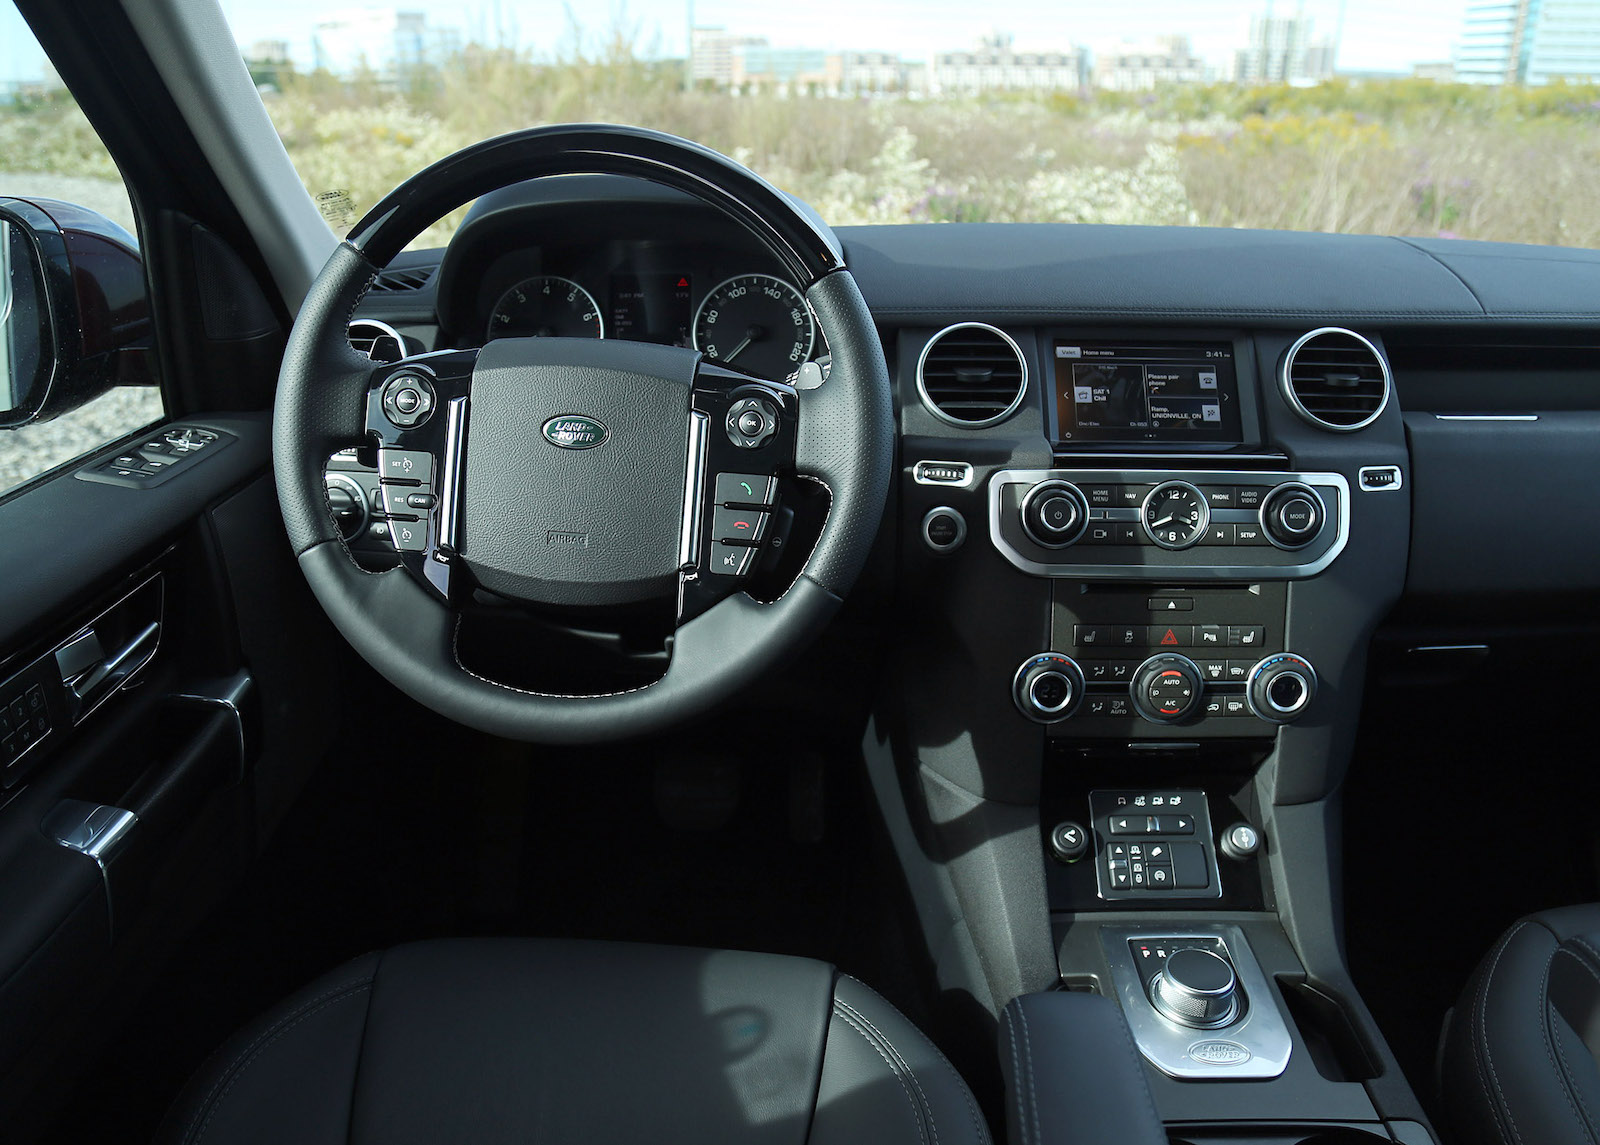 Range Rover Interior >> Review: 2016 Land Rover LR4 HSE Lux | Canadian Auto Review